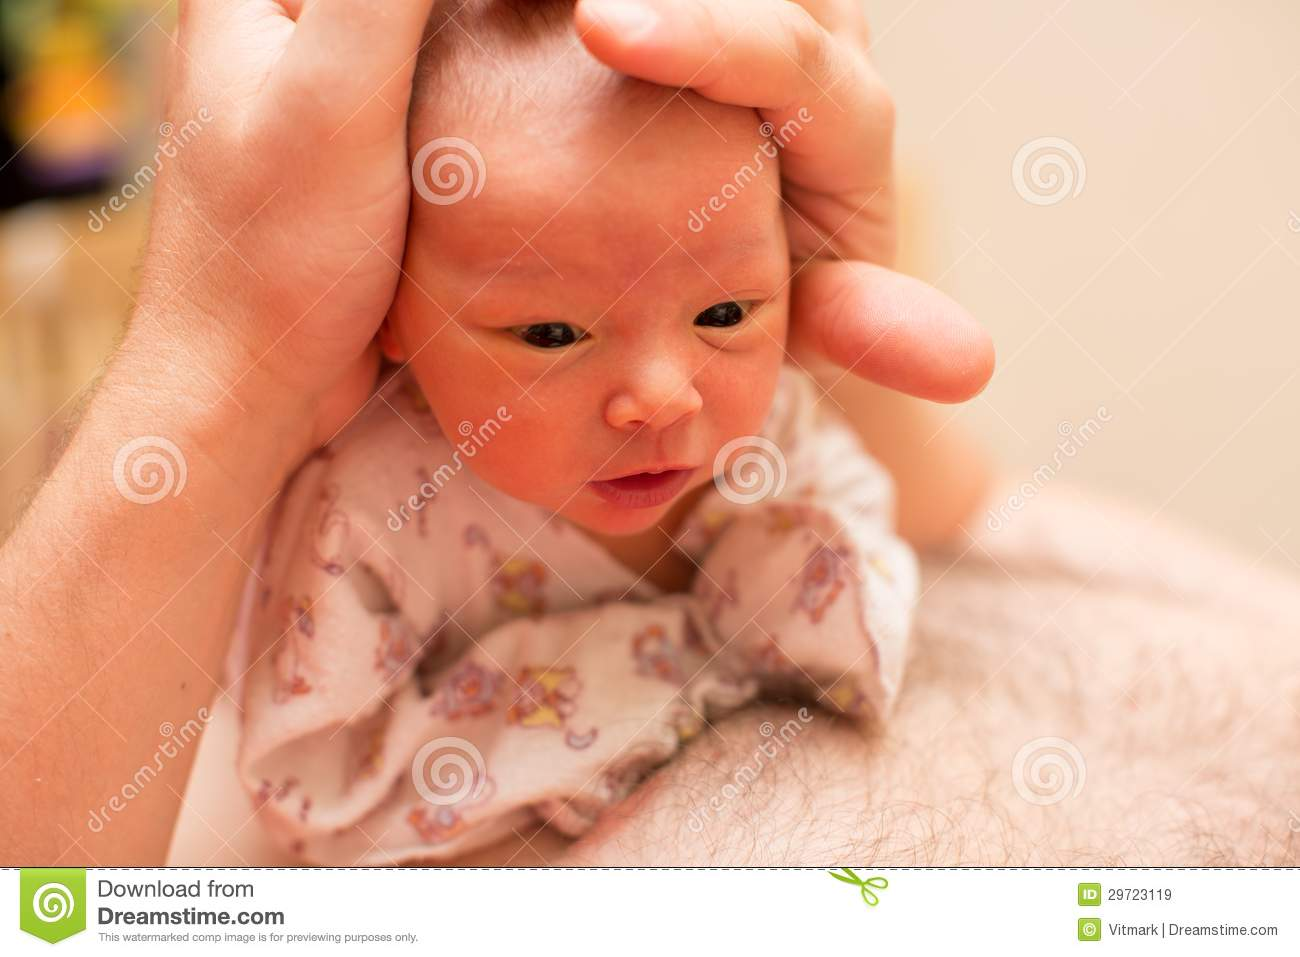 Newborn baby girl on the fathers hands at home. Use it for a child